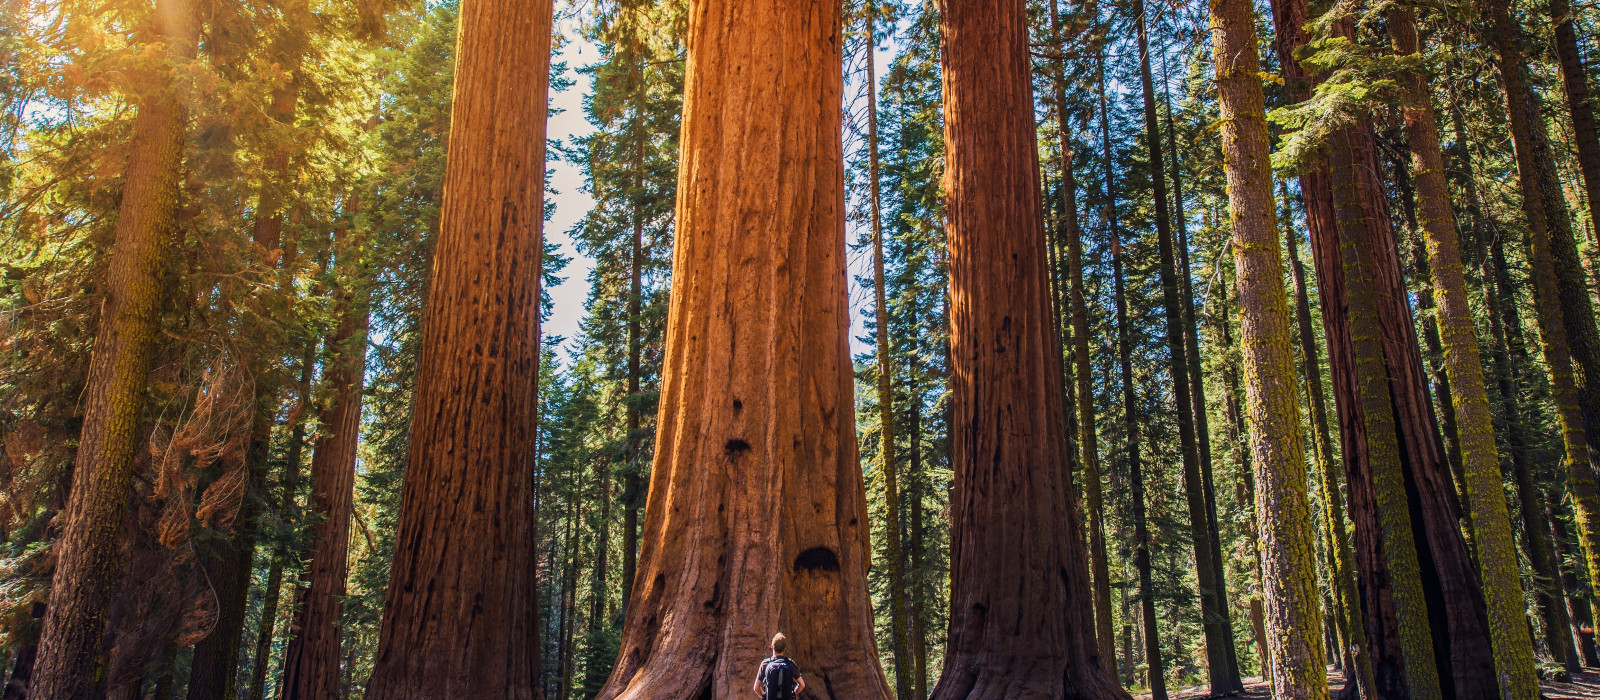 Reiseziel Sequoia Nationalpark USA